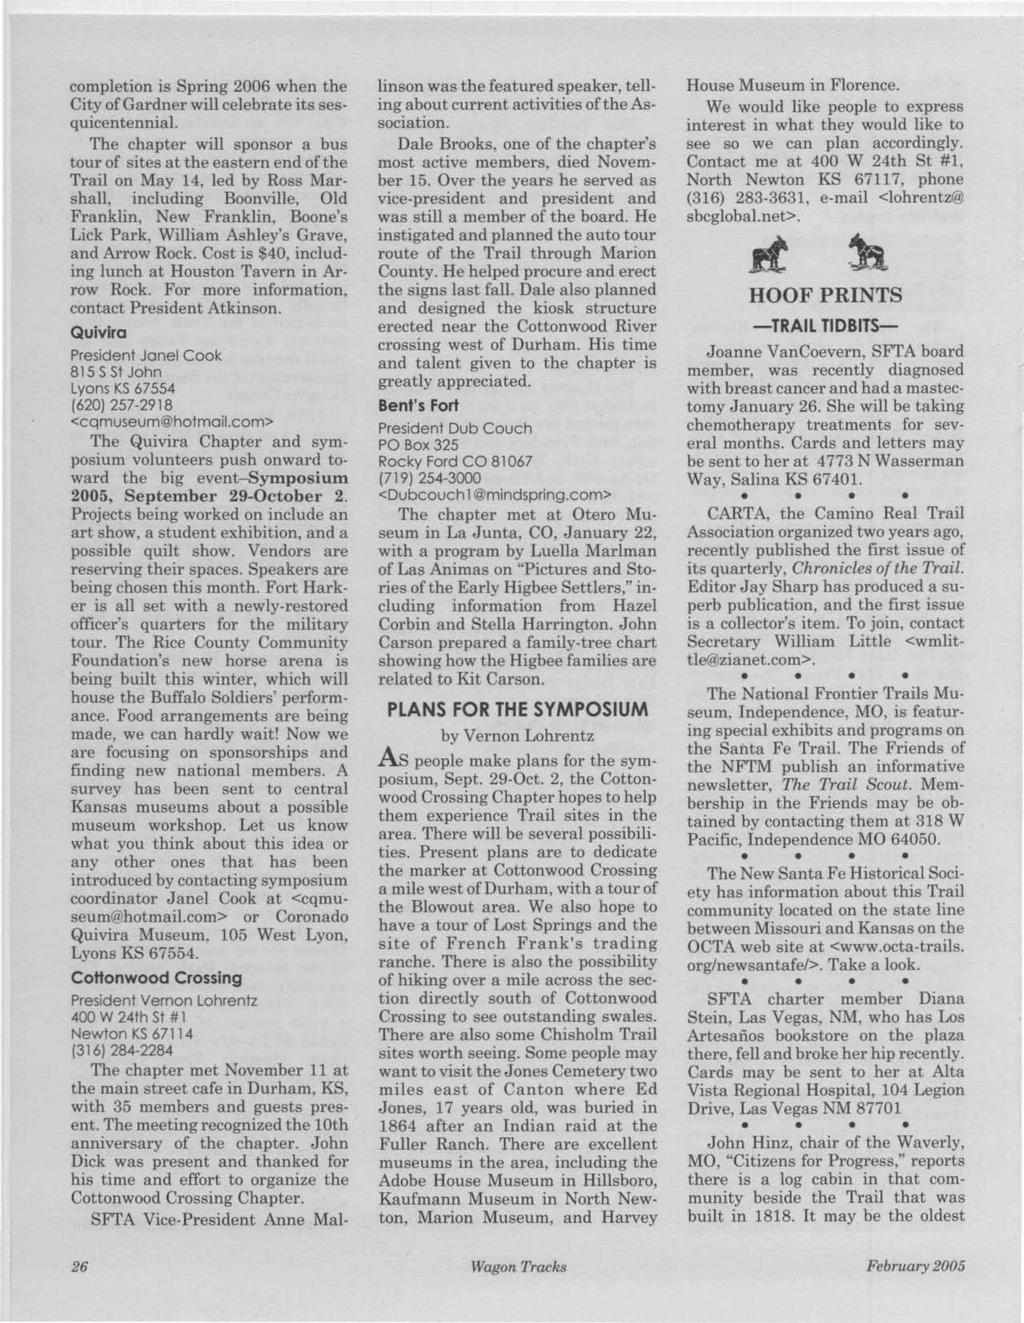 Fe trail associatiov quarterly volume 19 november 2004 number 1 pdf completion is spring 2006 when the city ofgardner will celebrate its sesquicentennial fandeluxe Choice Image